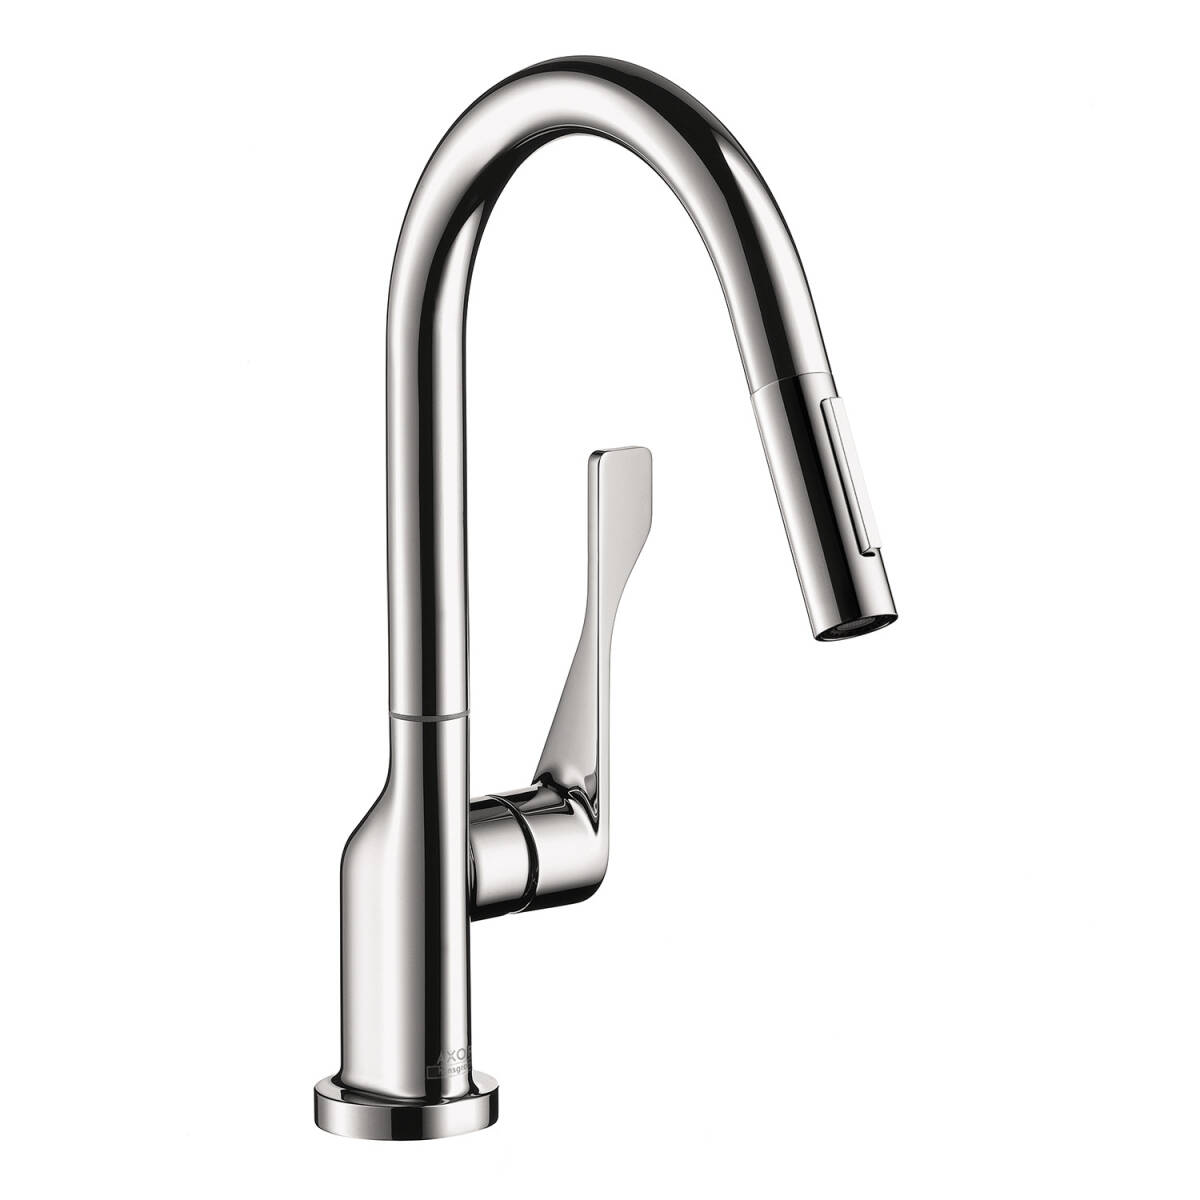 Single lever kitchen mixer with pull-out spray 1.75 GPM, Chrome, 39836001